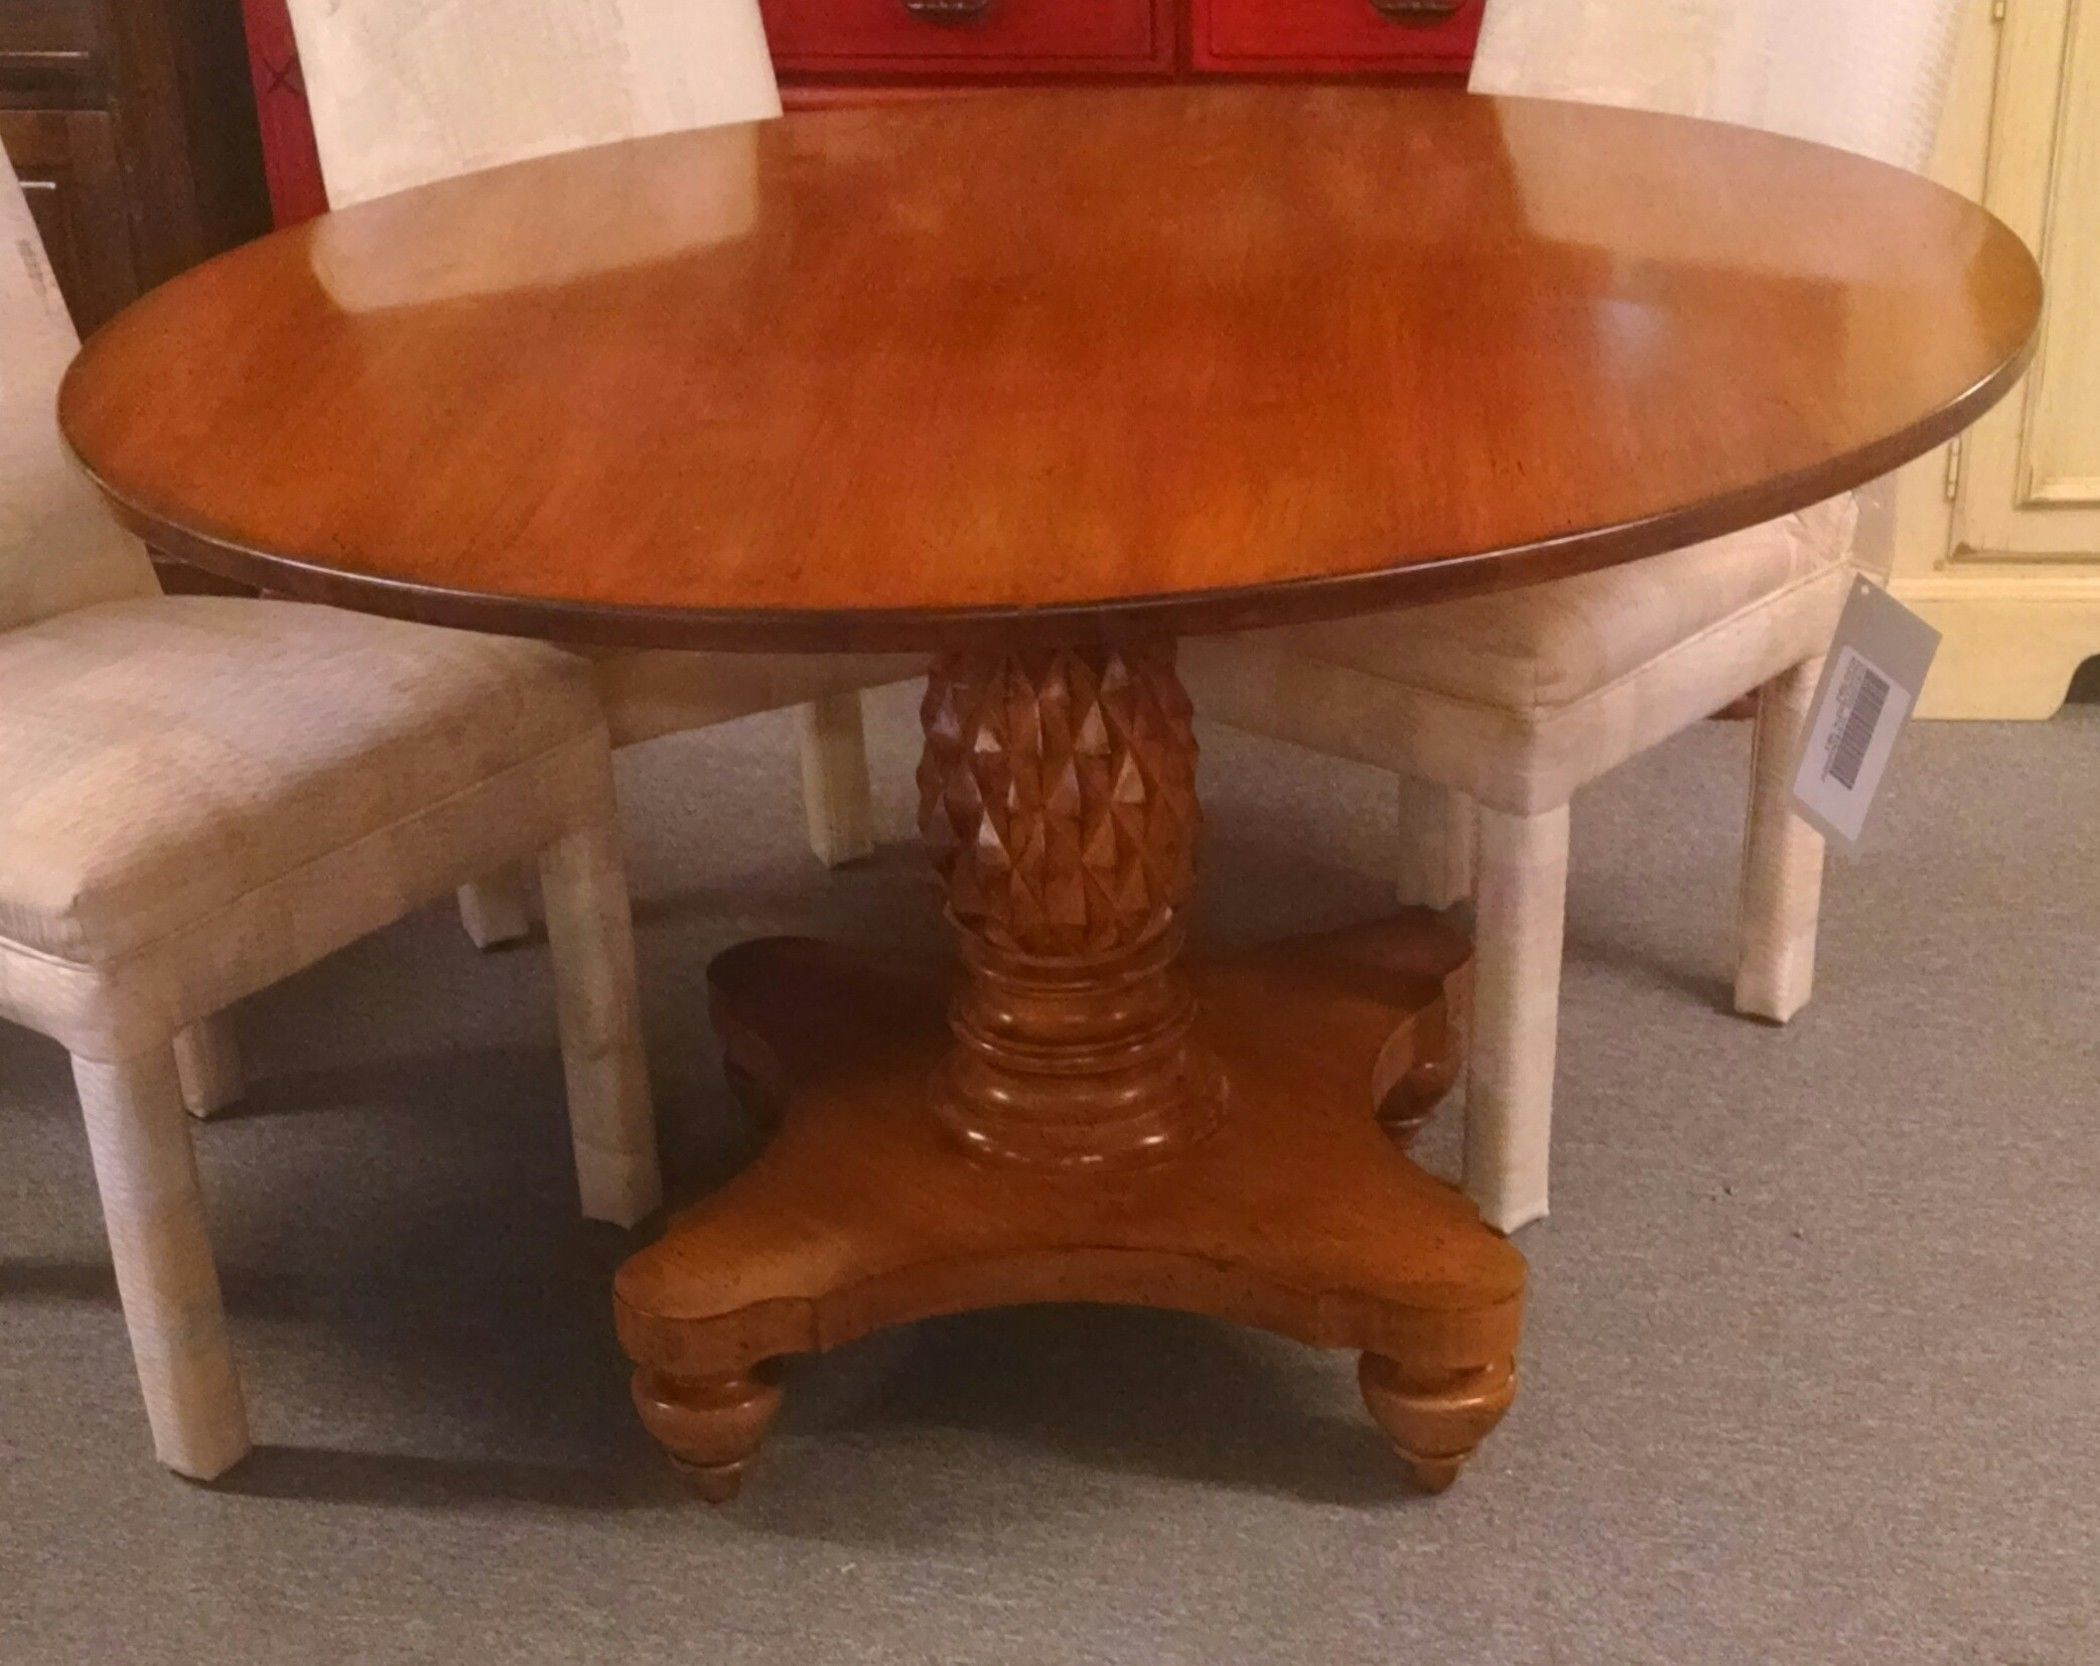 Pineapple Pedestal Table | Delmarva Furniture Consignment For Most Up To Date Jazmin Pedestal Dining Tables (View 4 of 15)